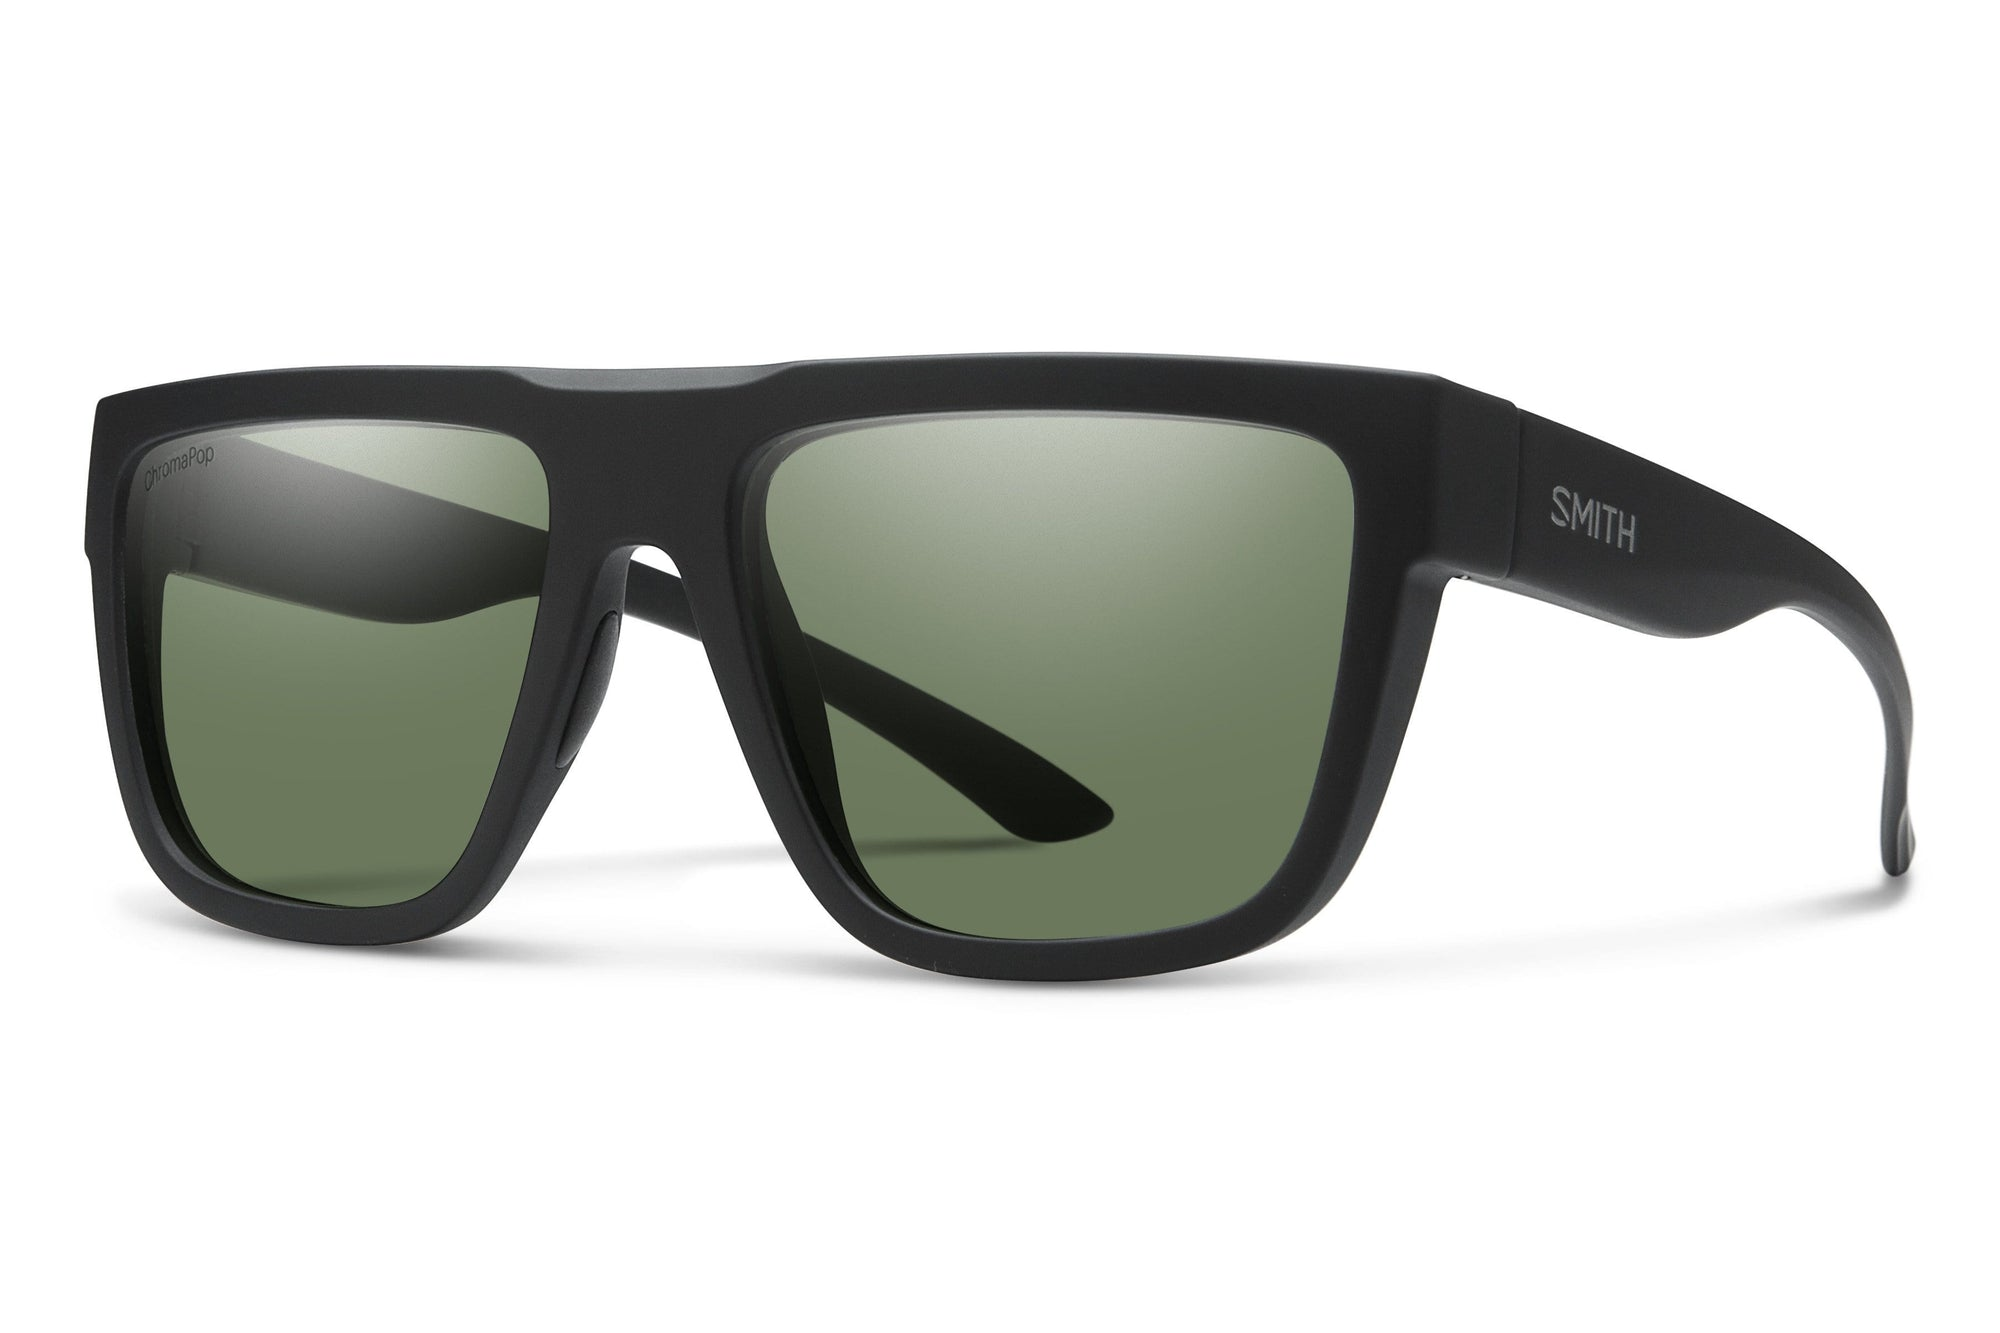 Smith The Comeback Rectangular Sunglasses